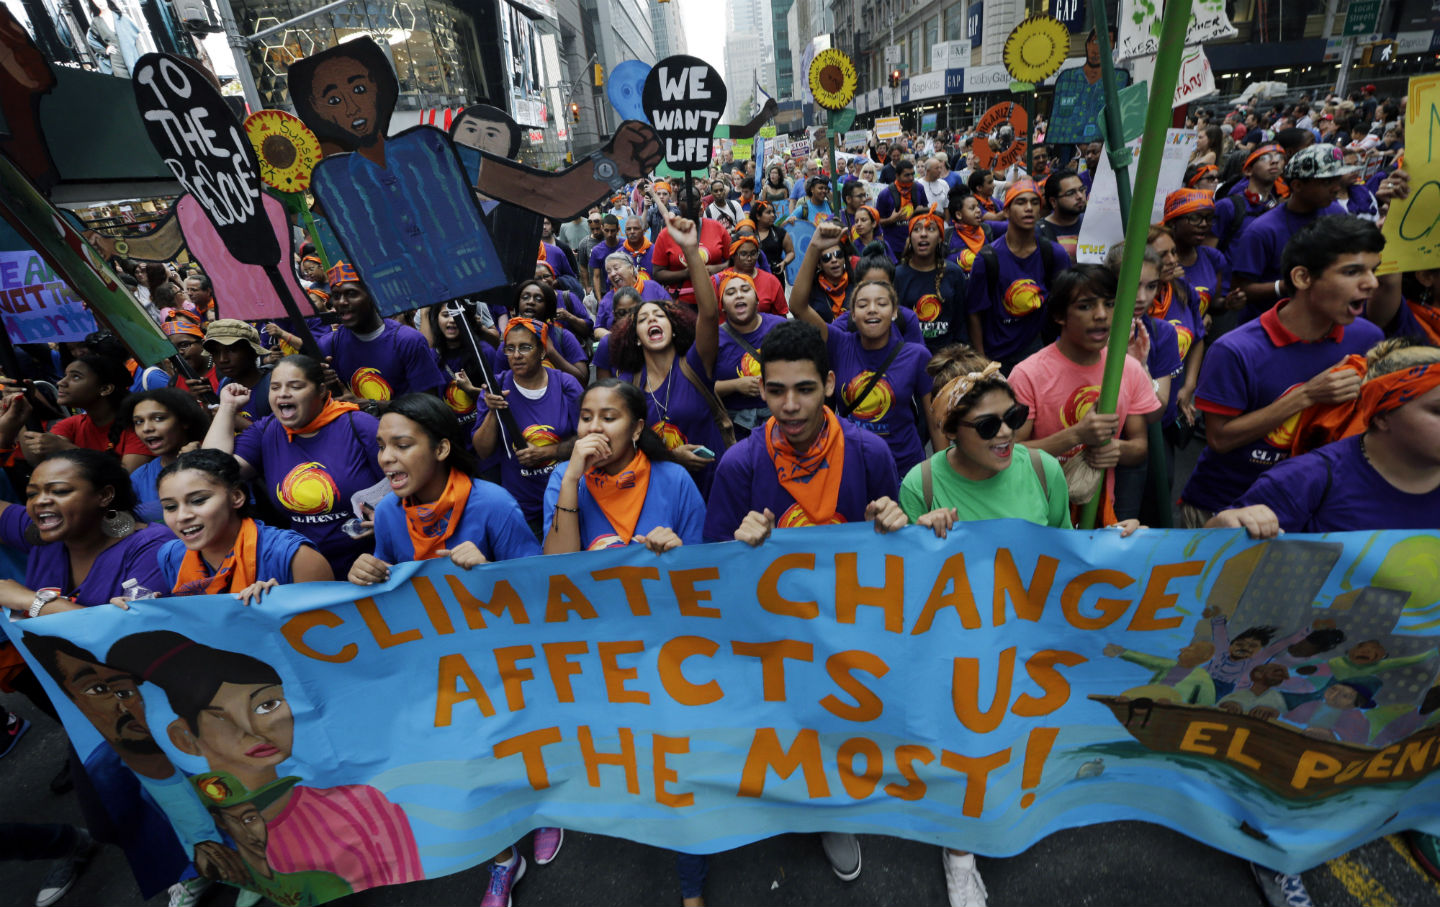 Young activists hold signs at the People's Climate March